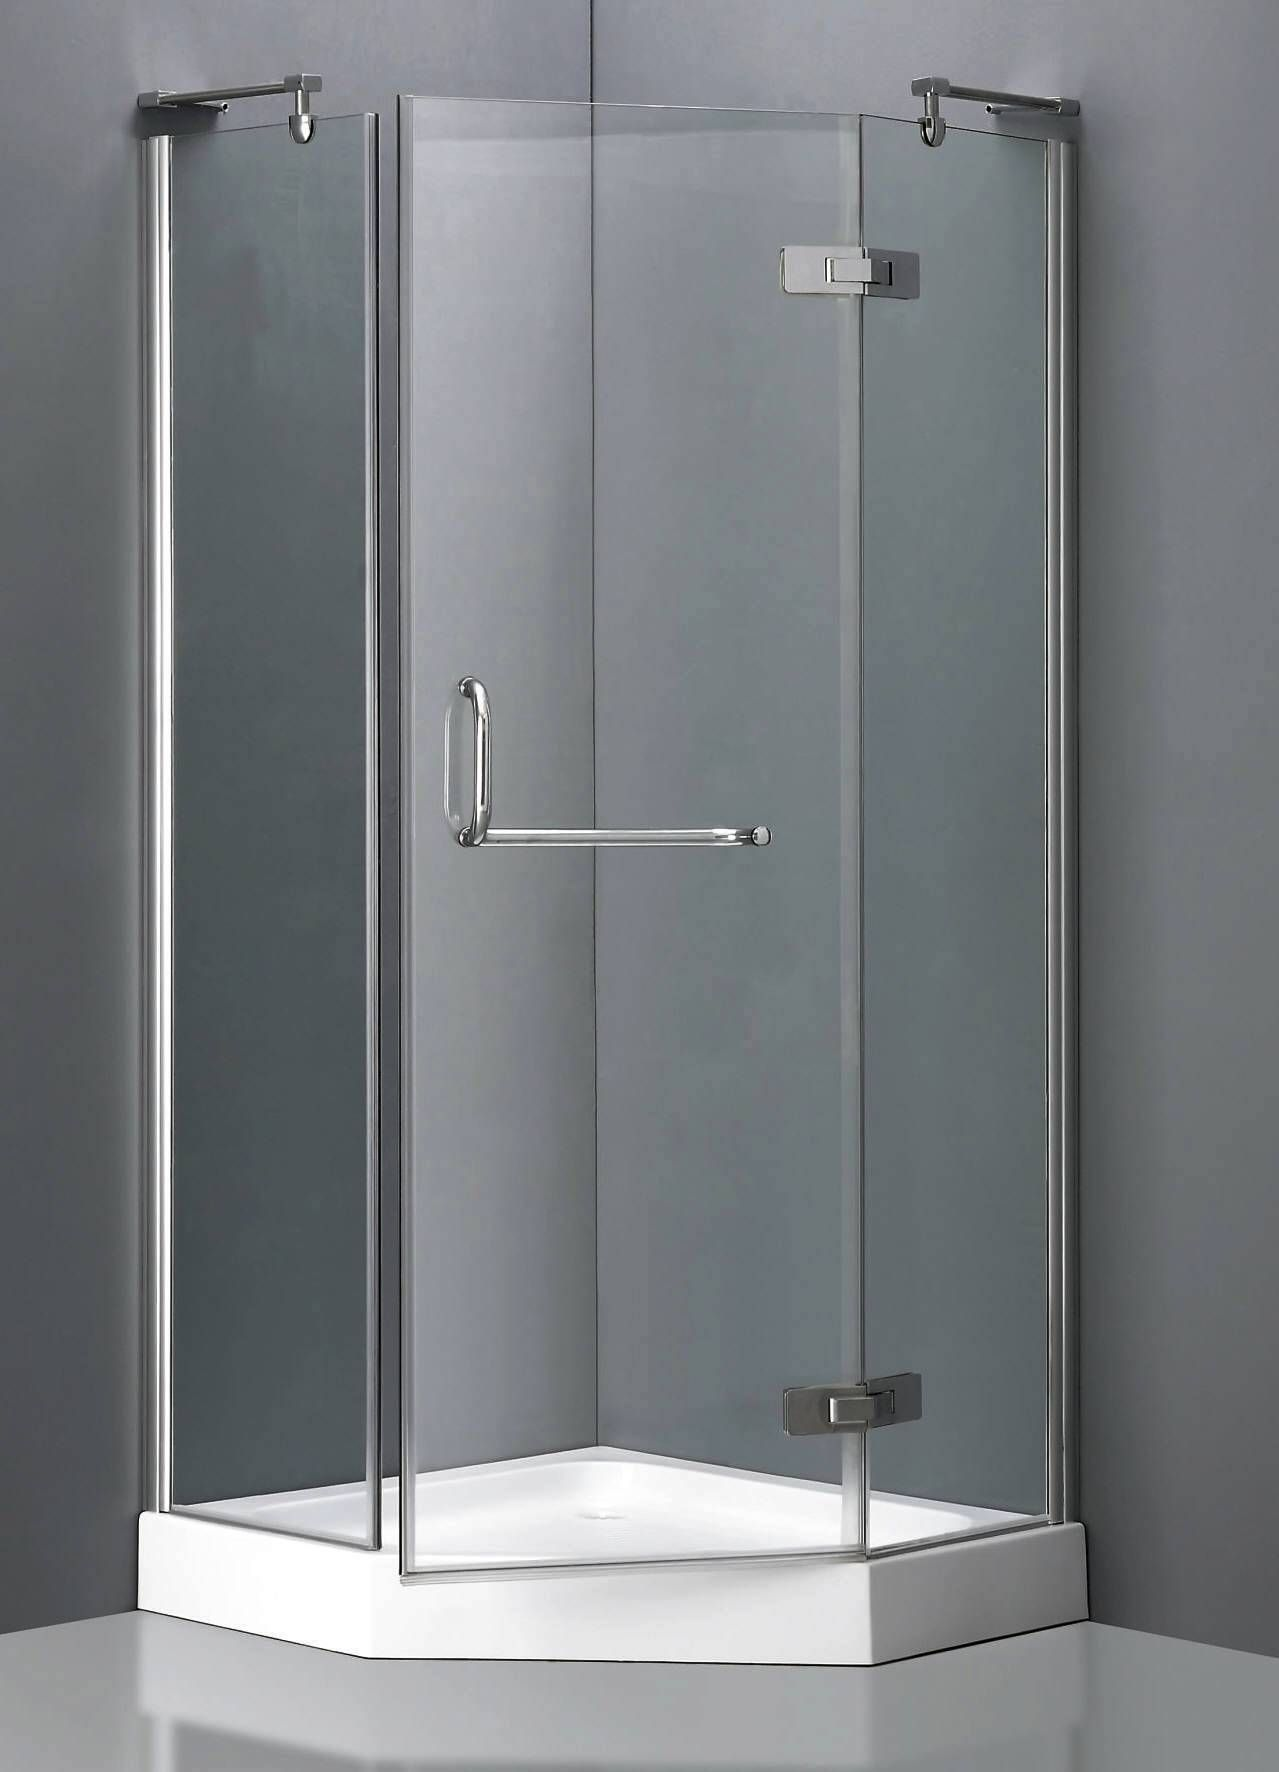 Corner Shower Stalls Canada Portrayal of Corner Shower Units for